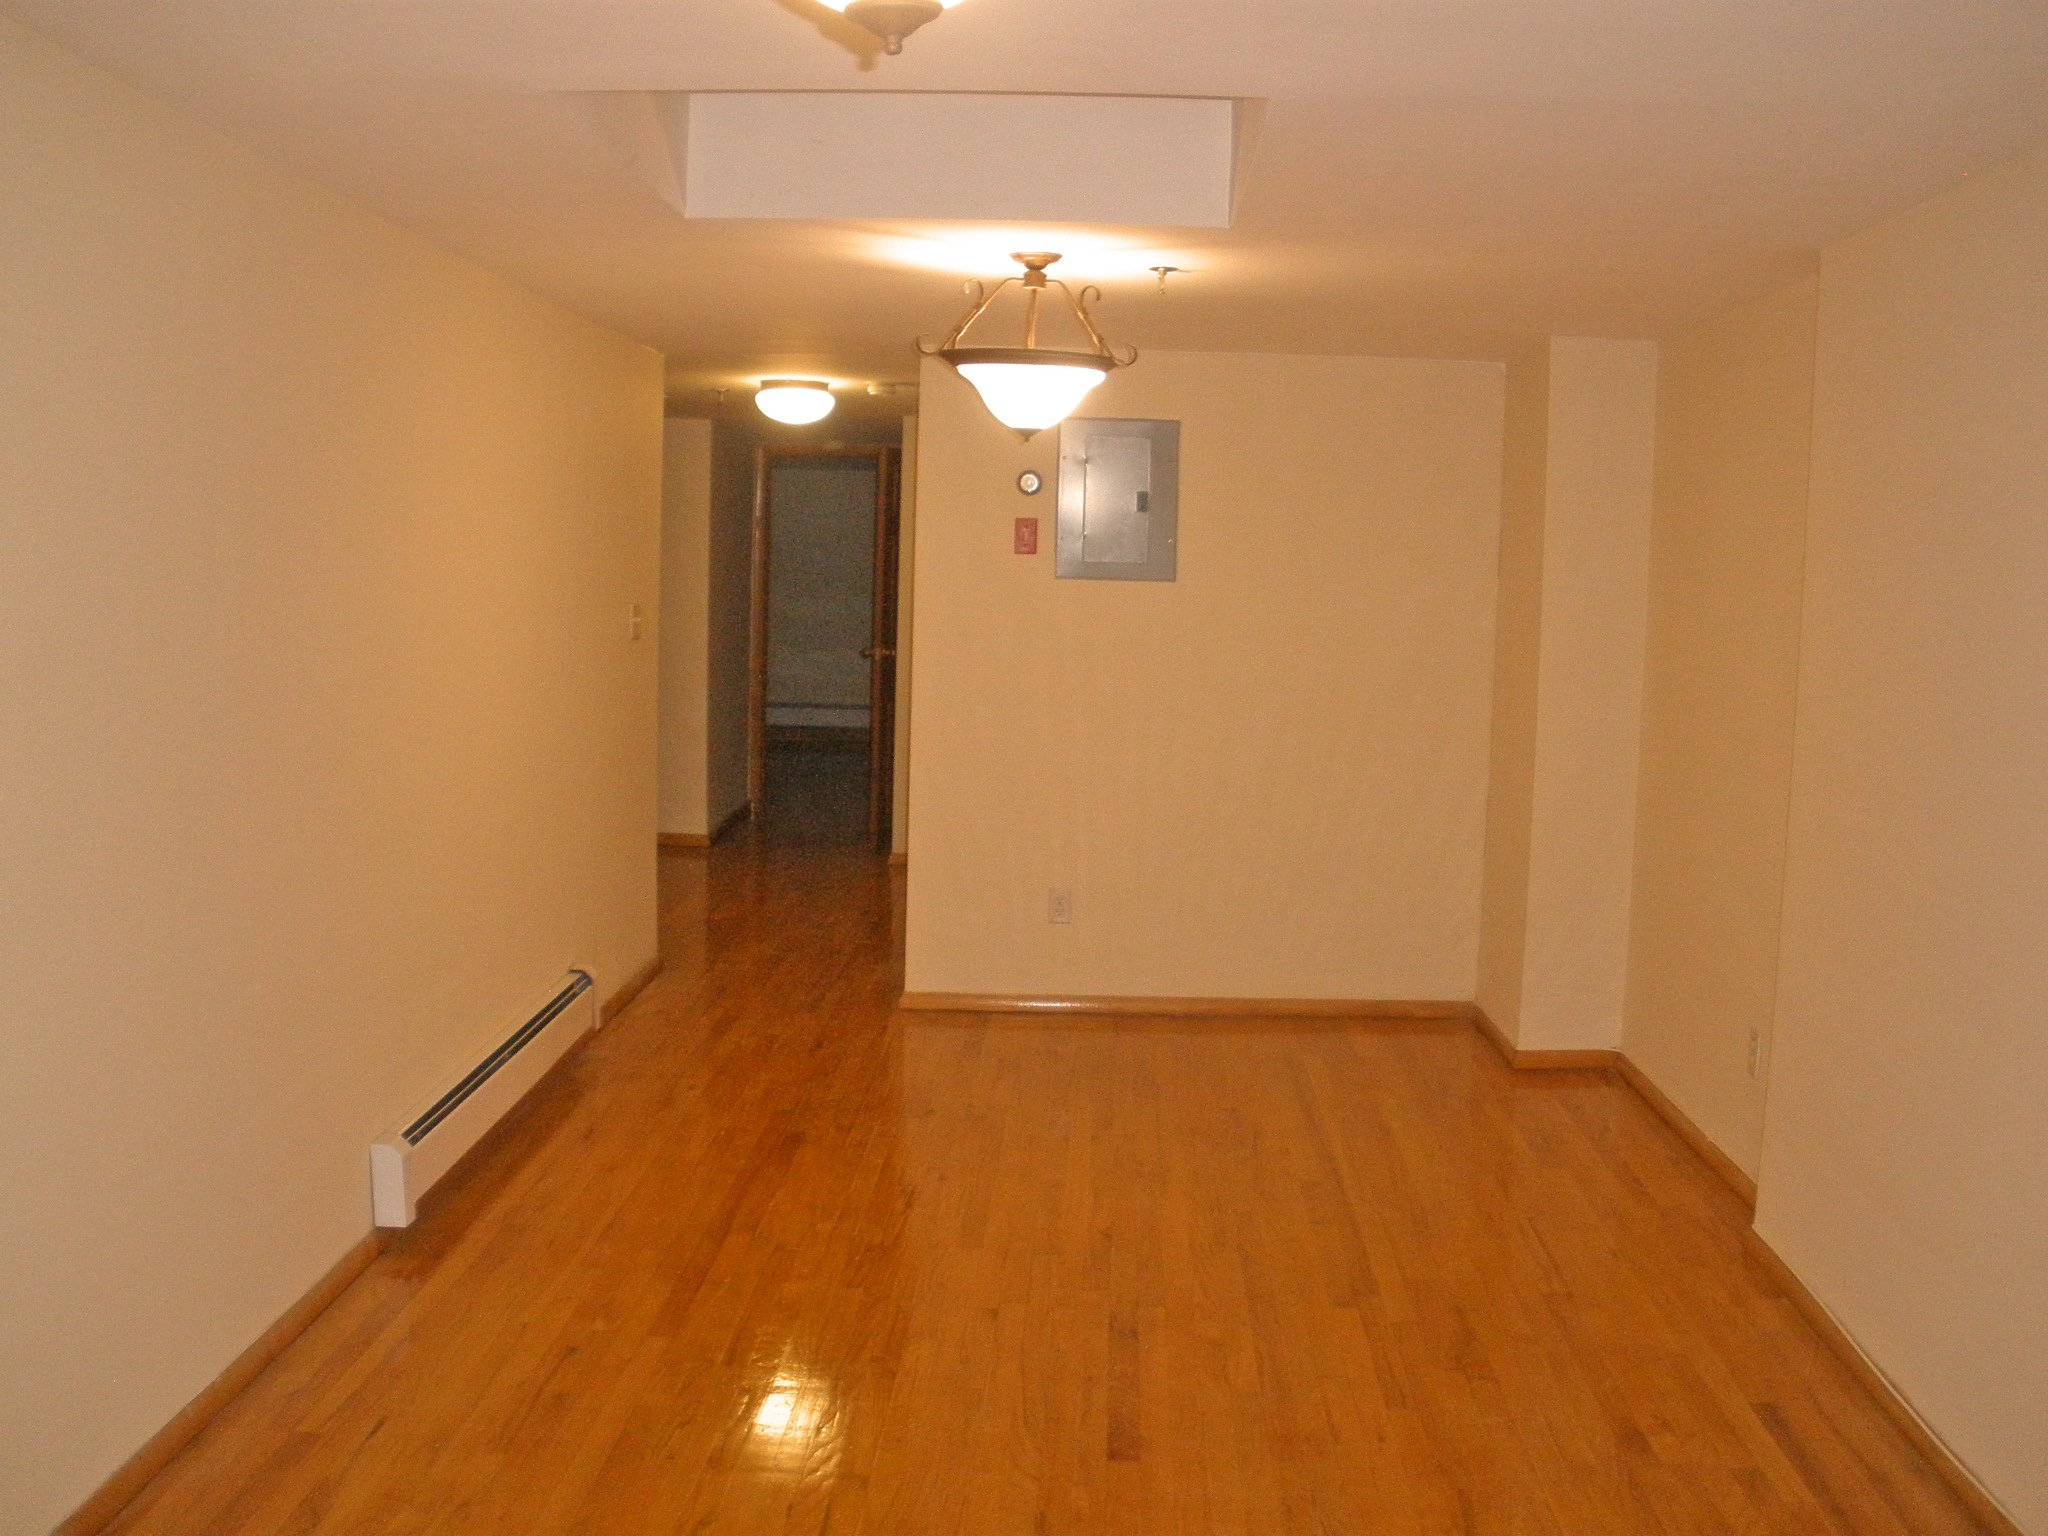 Bedford stuyvesant 1 bedroom apartment for rent brooklyn crg3106 for Two bedroom apt in bed stuy area